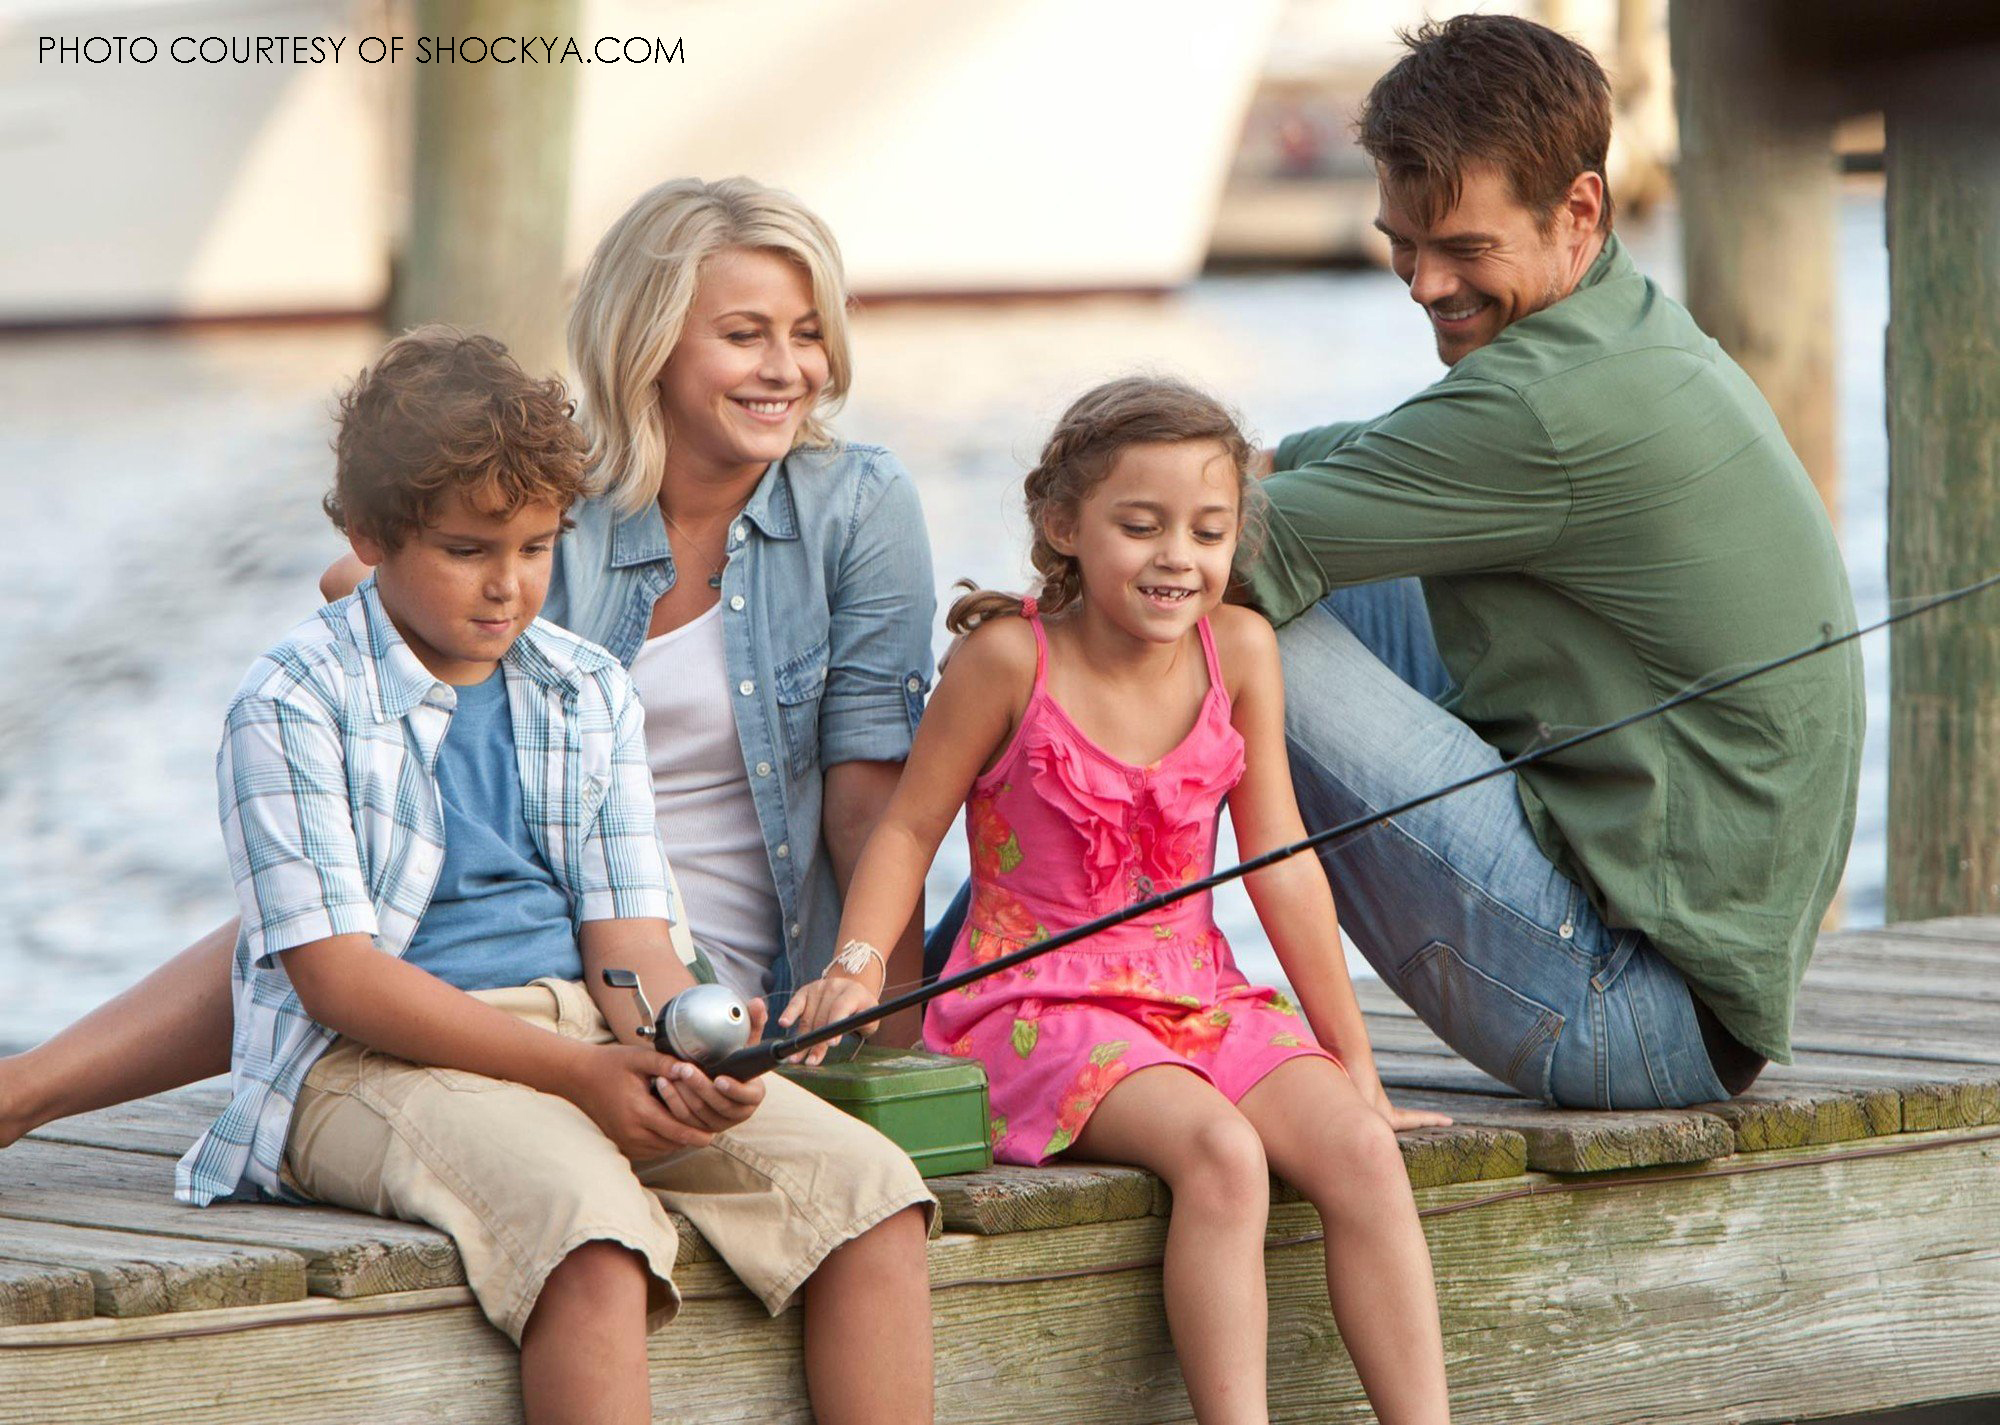 In one of the softer Safe Haven scenes, the characters Katie, Alex, and his children Lexi and Josh spend time together on the docks, fishing. The movie truly builds upon relationships and being a family.